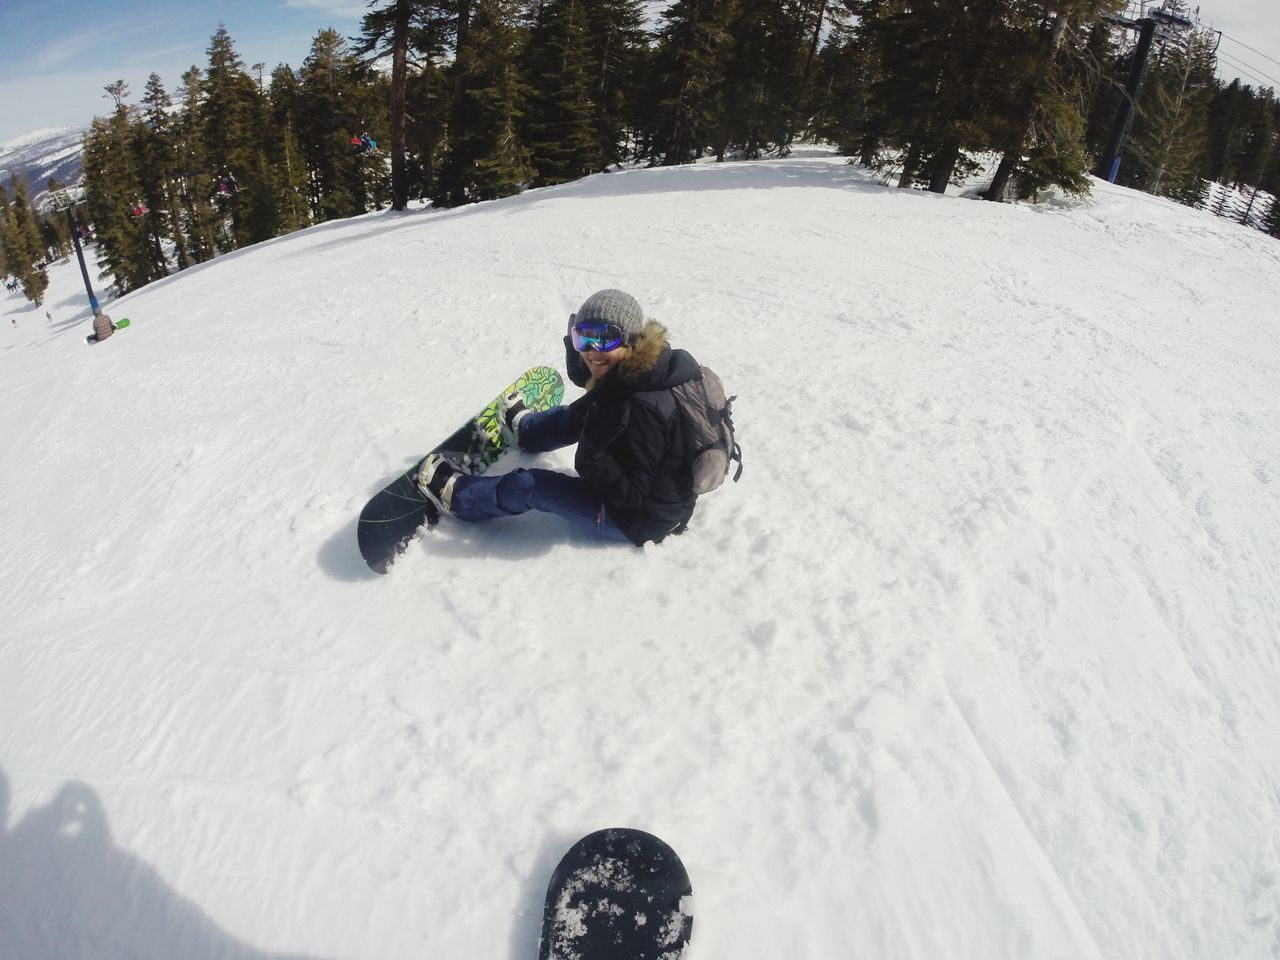 Udacity Design Trip // Snow Winter Cold Temperature Leisure Activity One Person Vacations Snowboarding Adventure Ski Holiday Ski Goggles Day Fun Real People Lifestyles Warm Clothing Ski Slope One Young Woman Only Outdoors Young Adult People